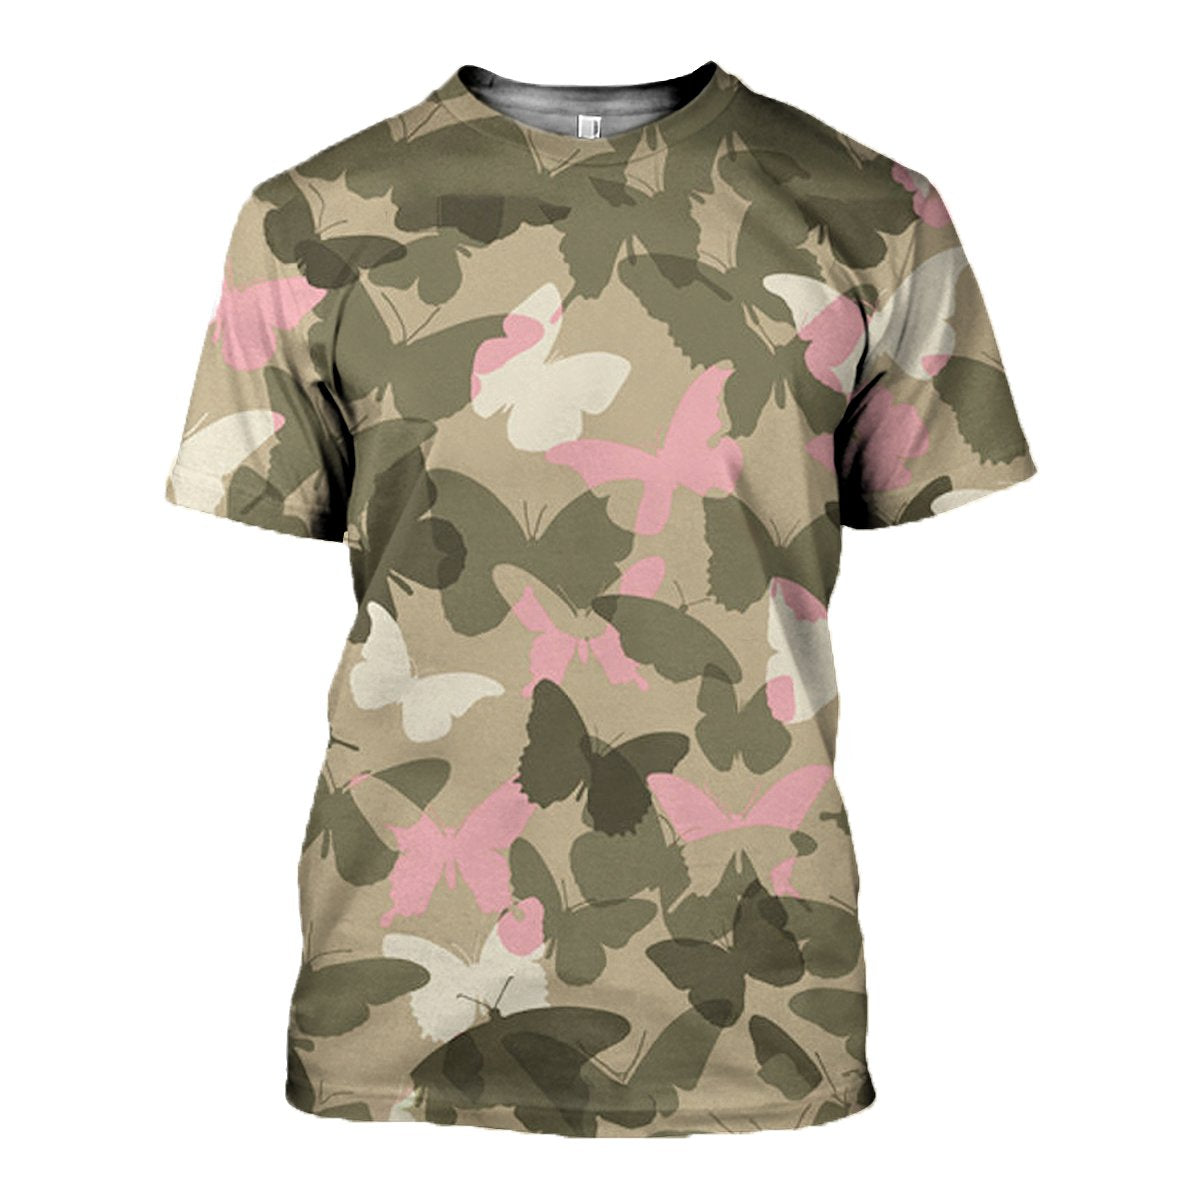 3D printed Camo and Butterflies T-shirt Hoodie